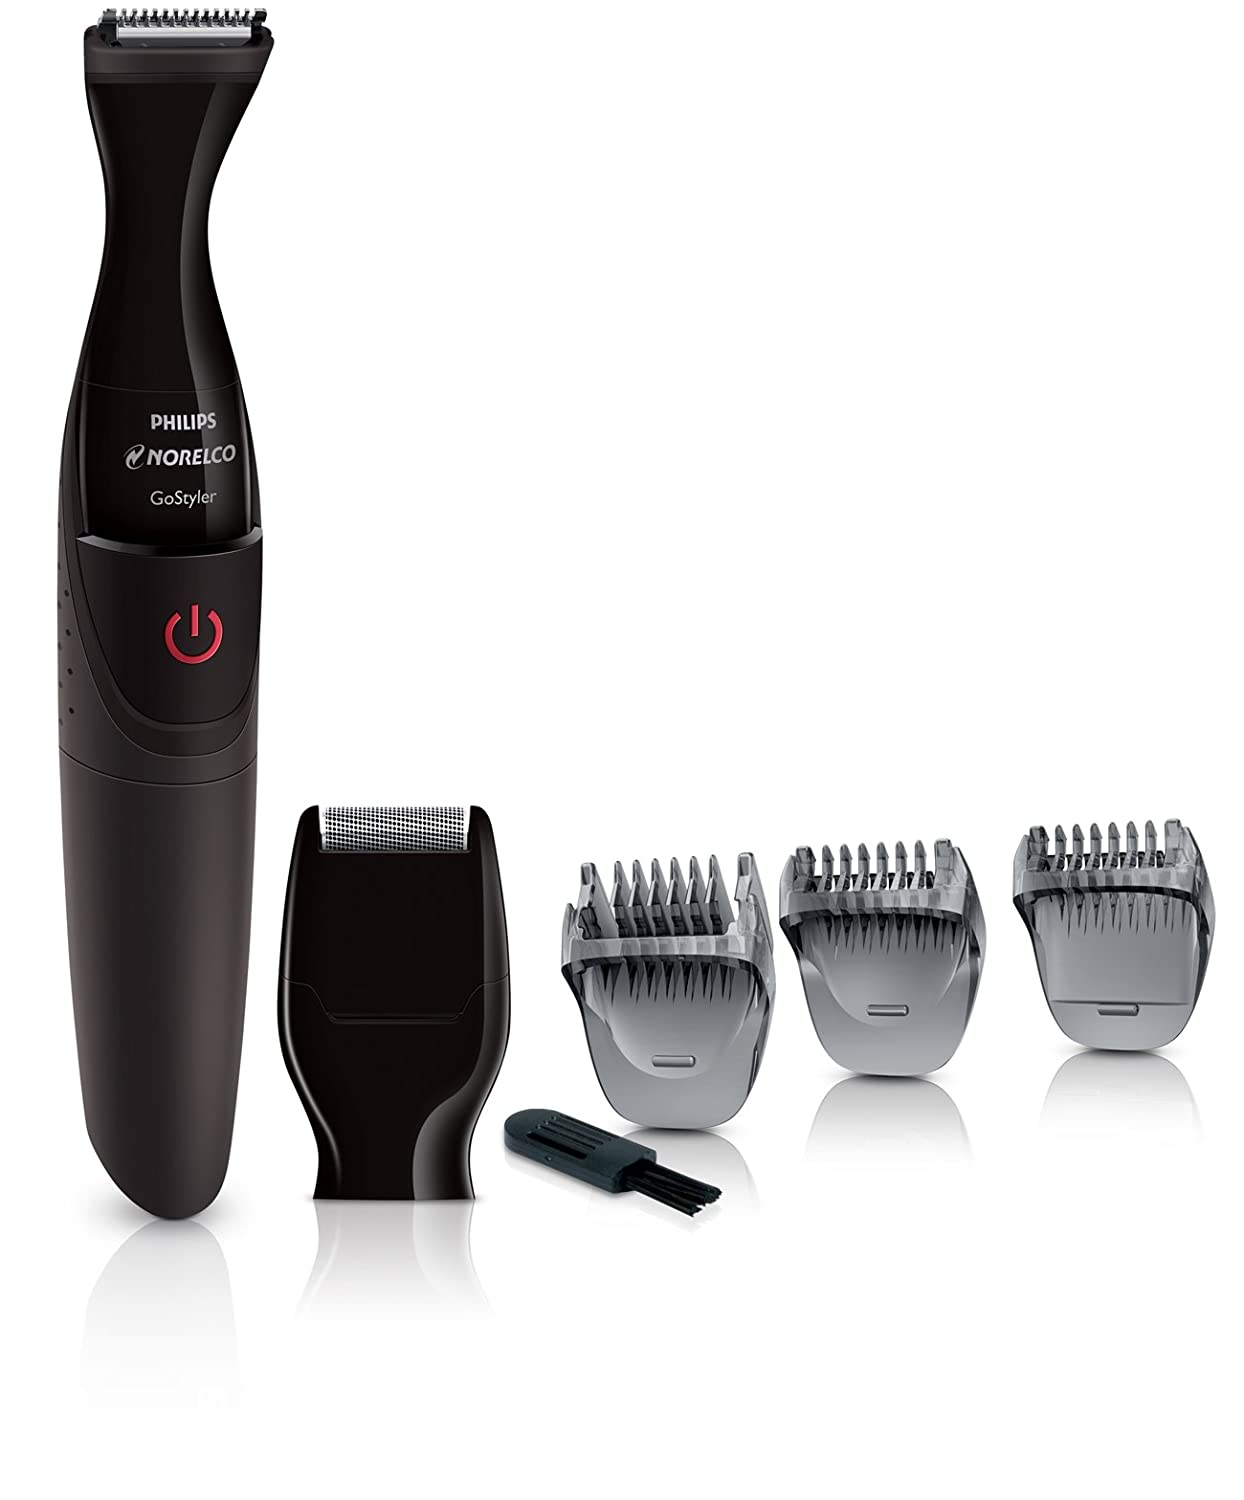 Philips Norelco GoStyler (Best Bikini Trimmer and Shaver)